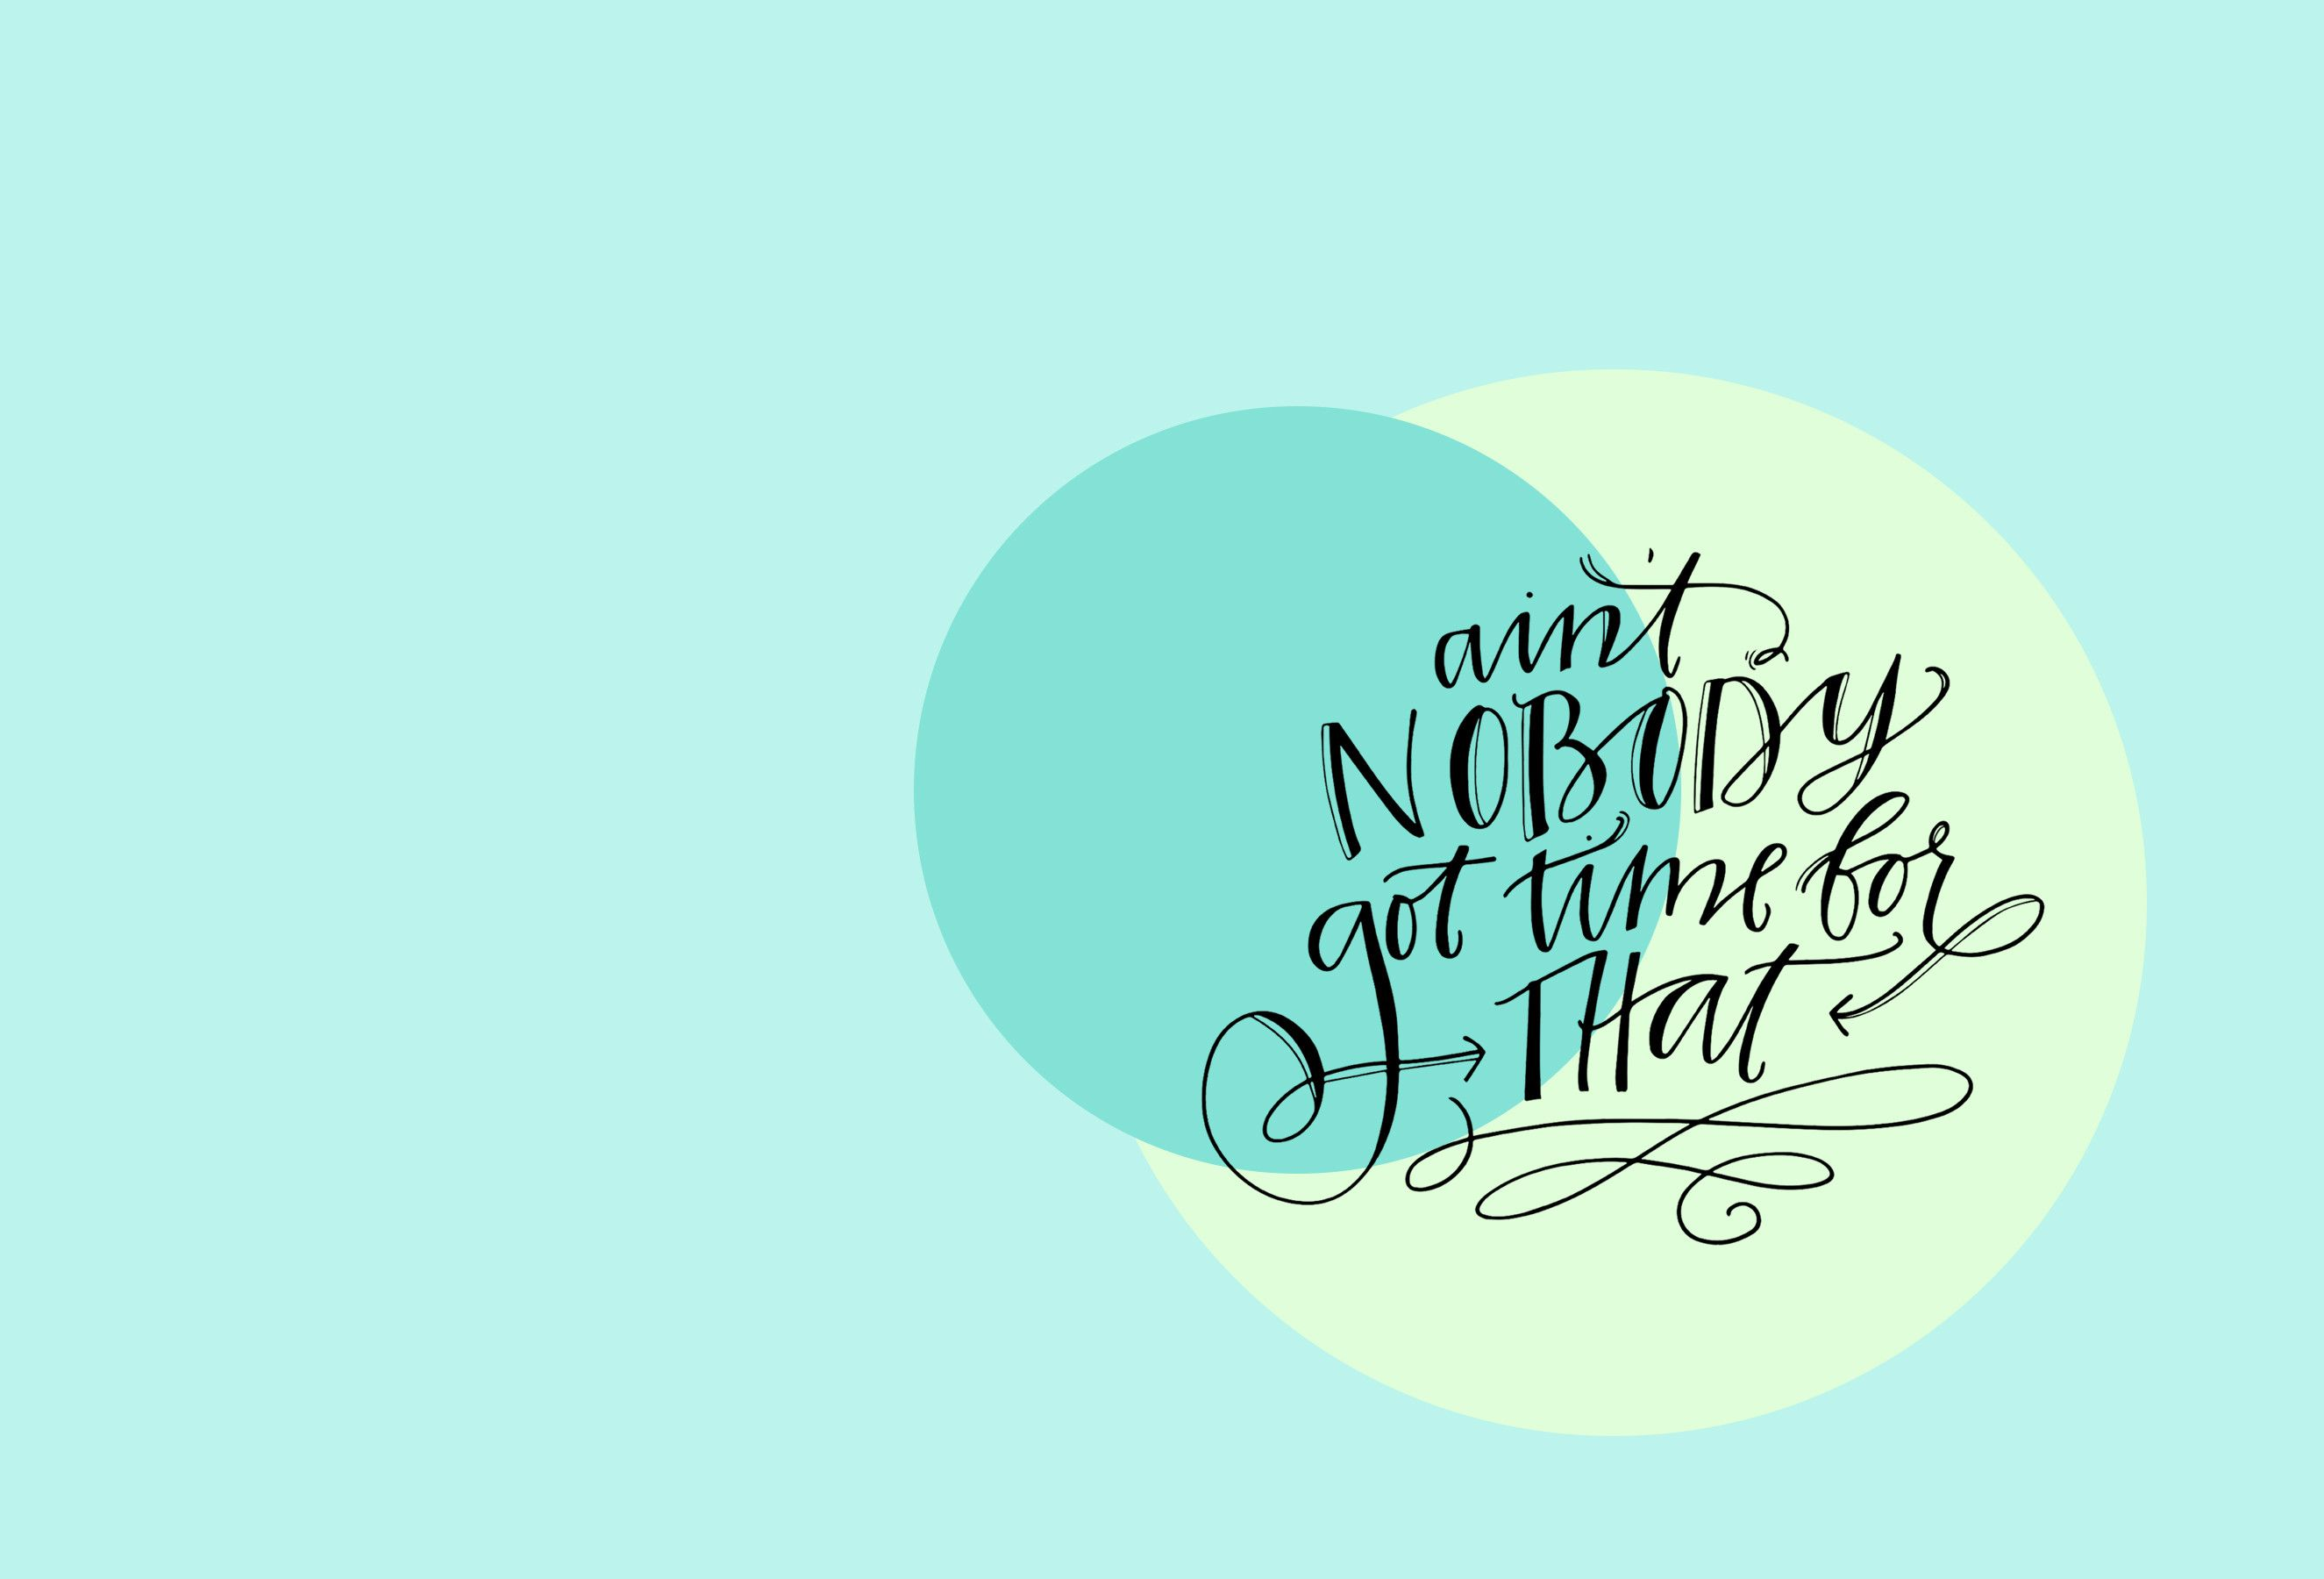 calligraphy wallpapers top free